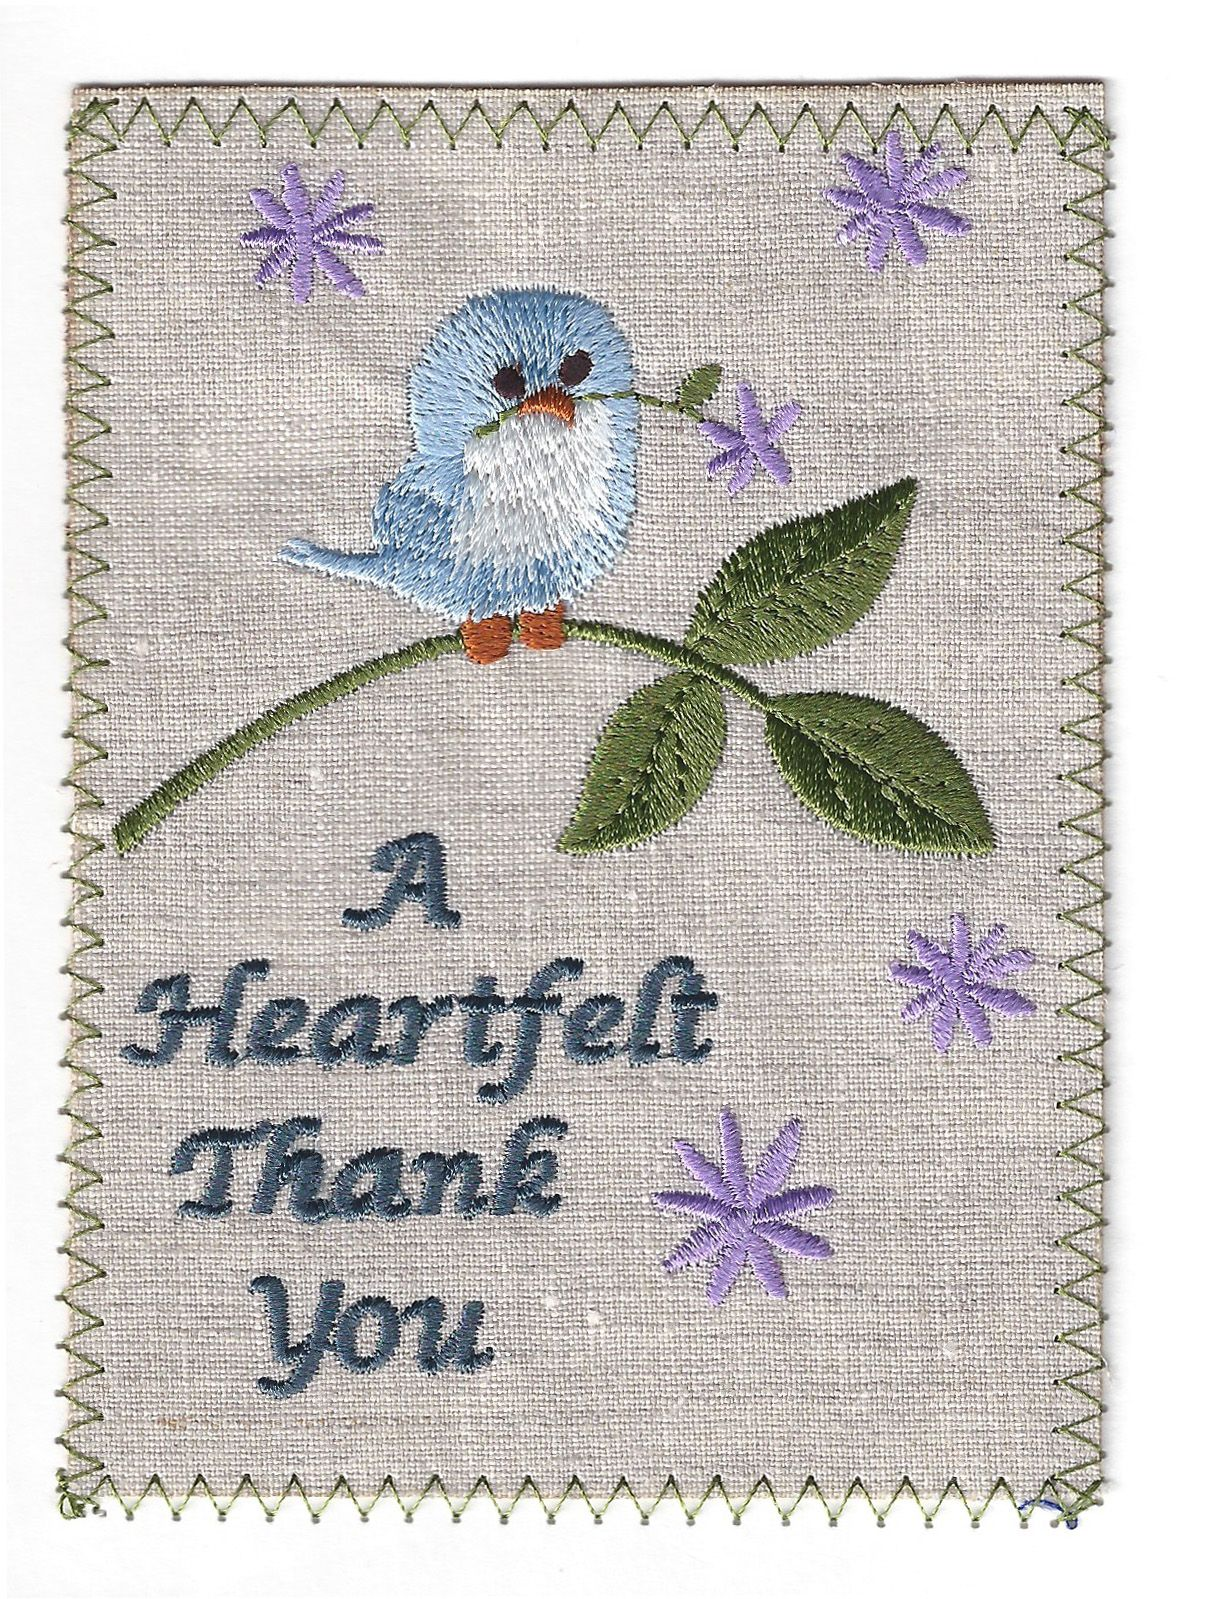 Cute Blue Bird Saying Thank You On Embroidered Linen Card Item